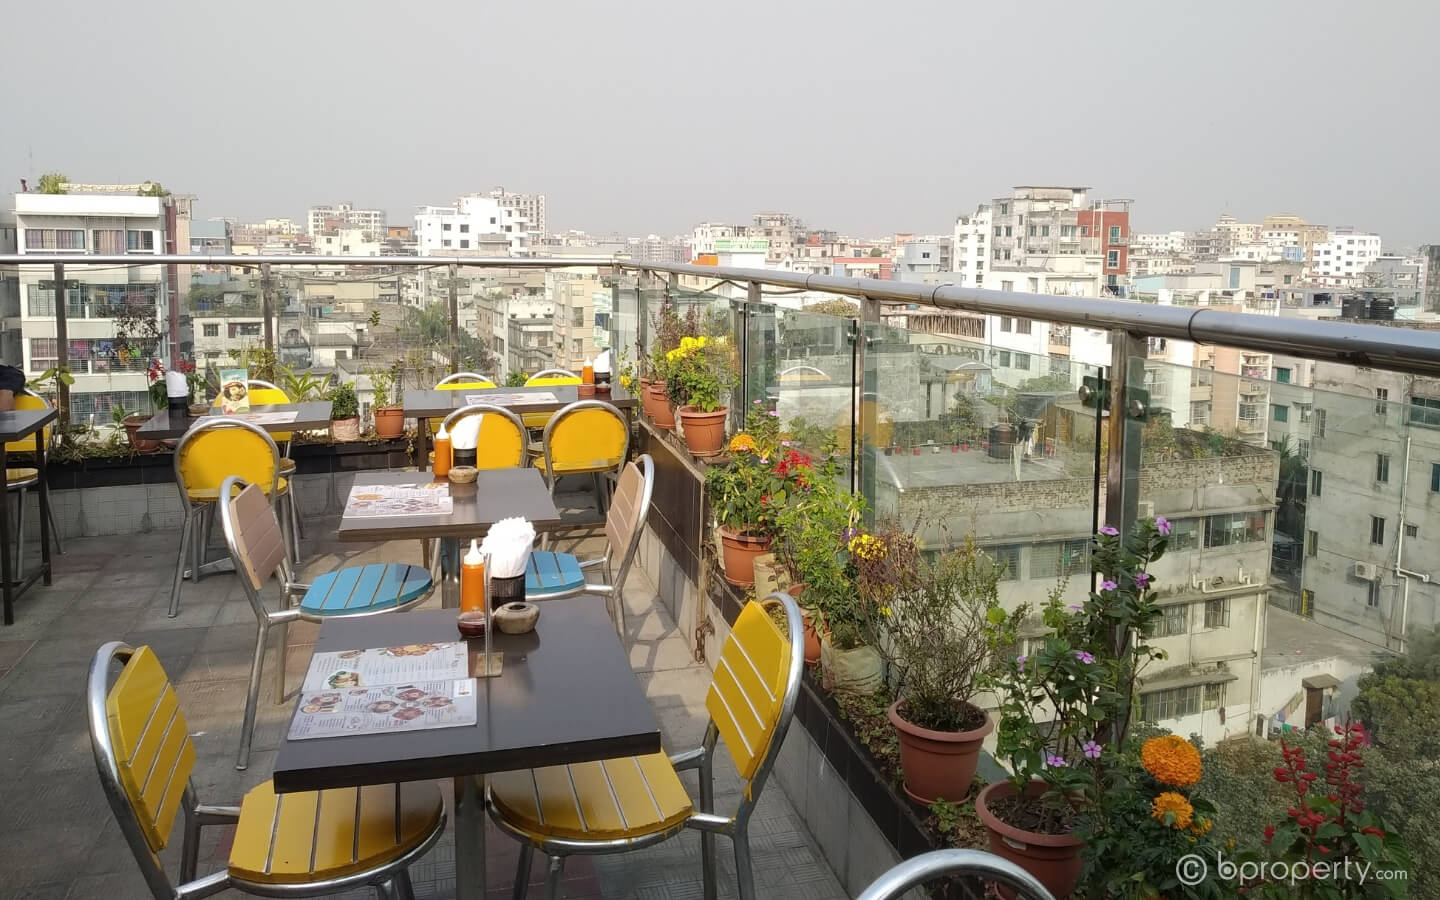 When it comes to places to eat in Khilgaon, other places rarely match Alfresco's quality